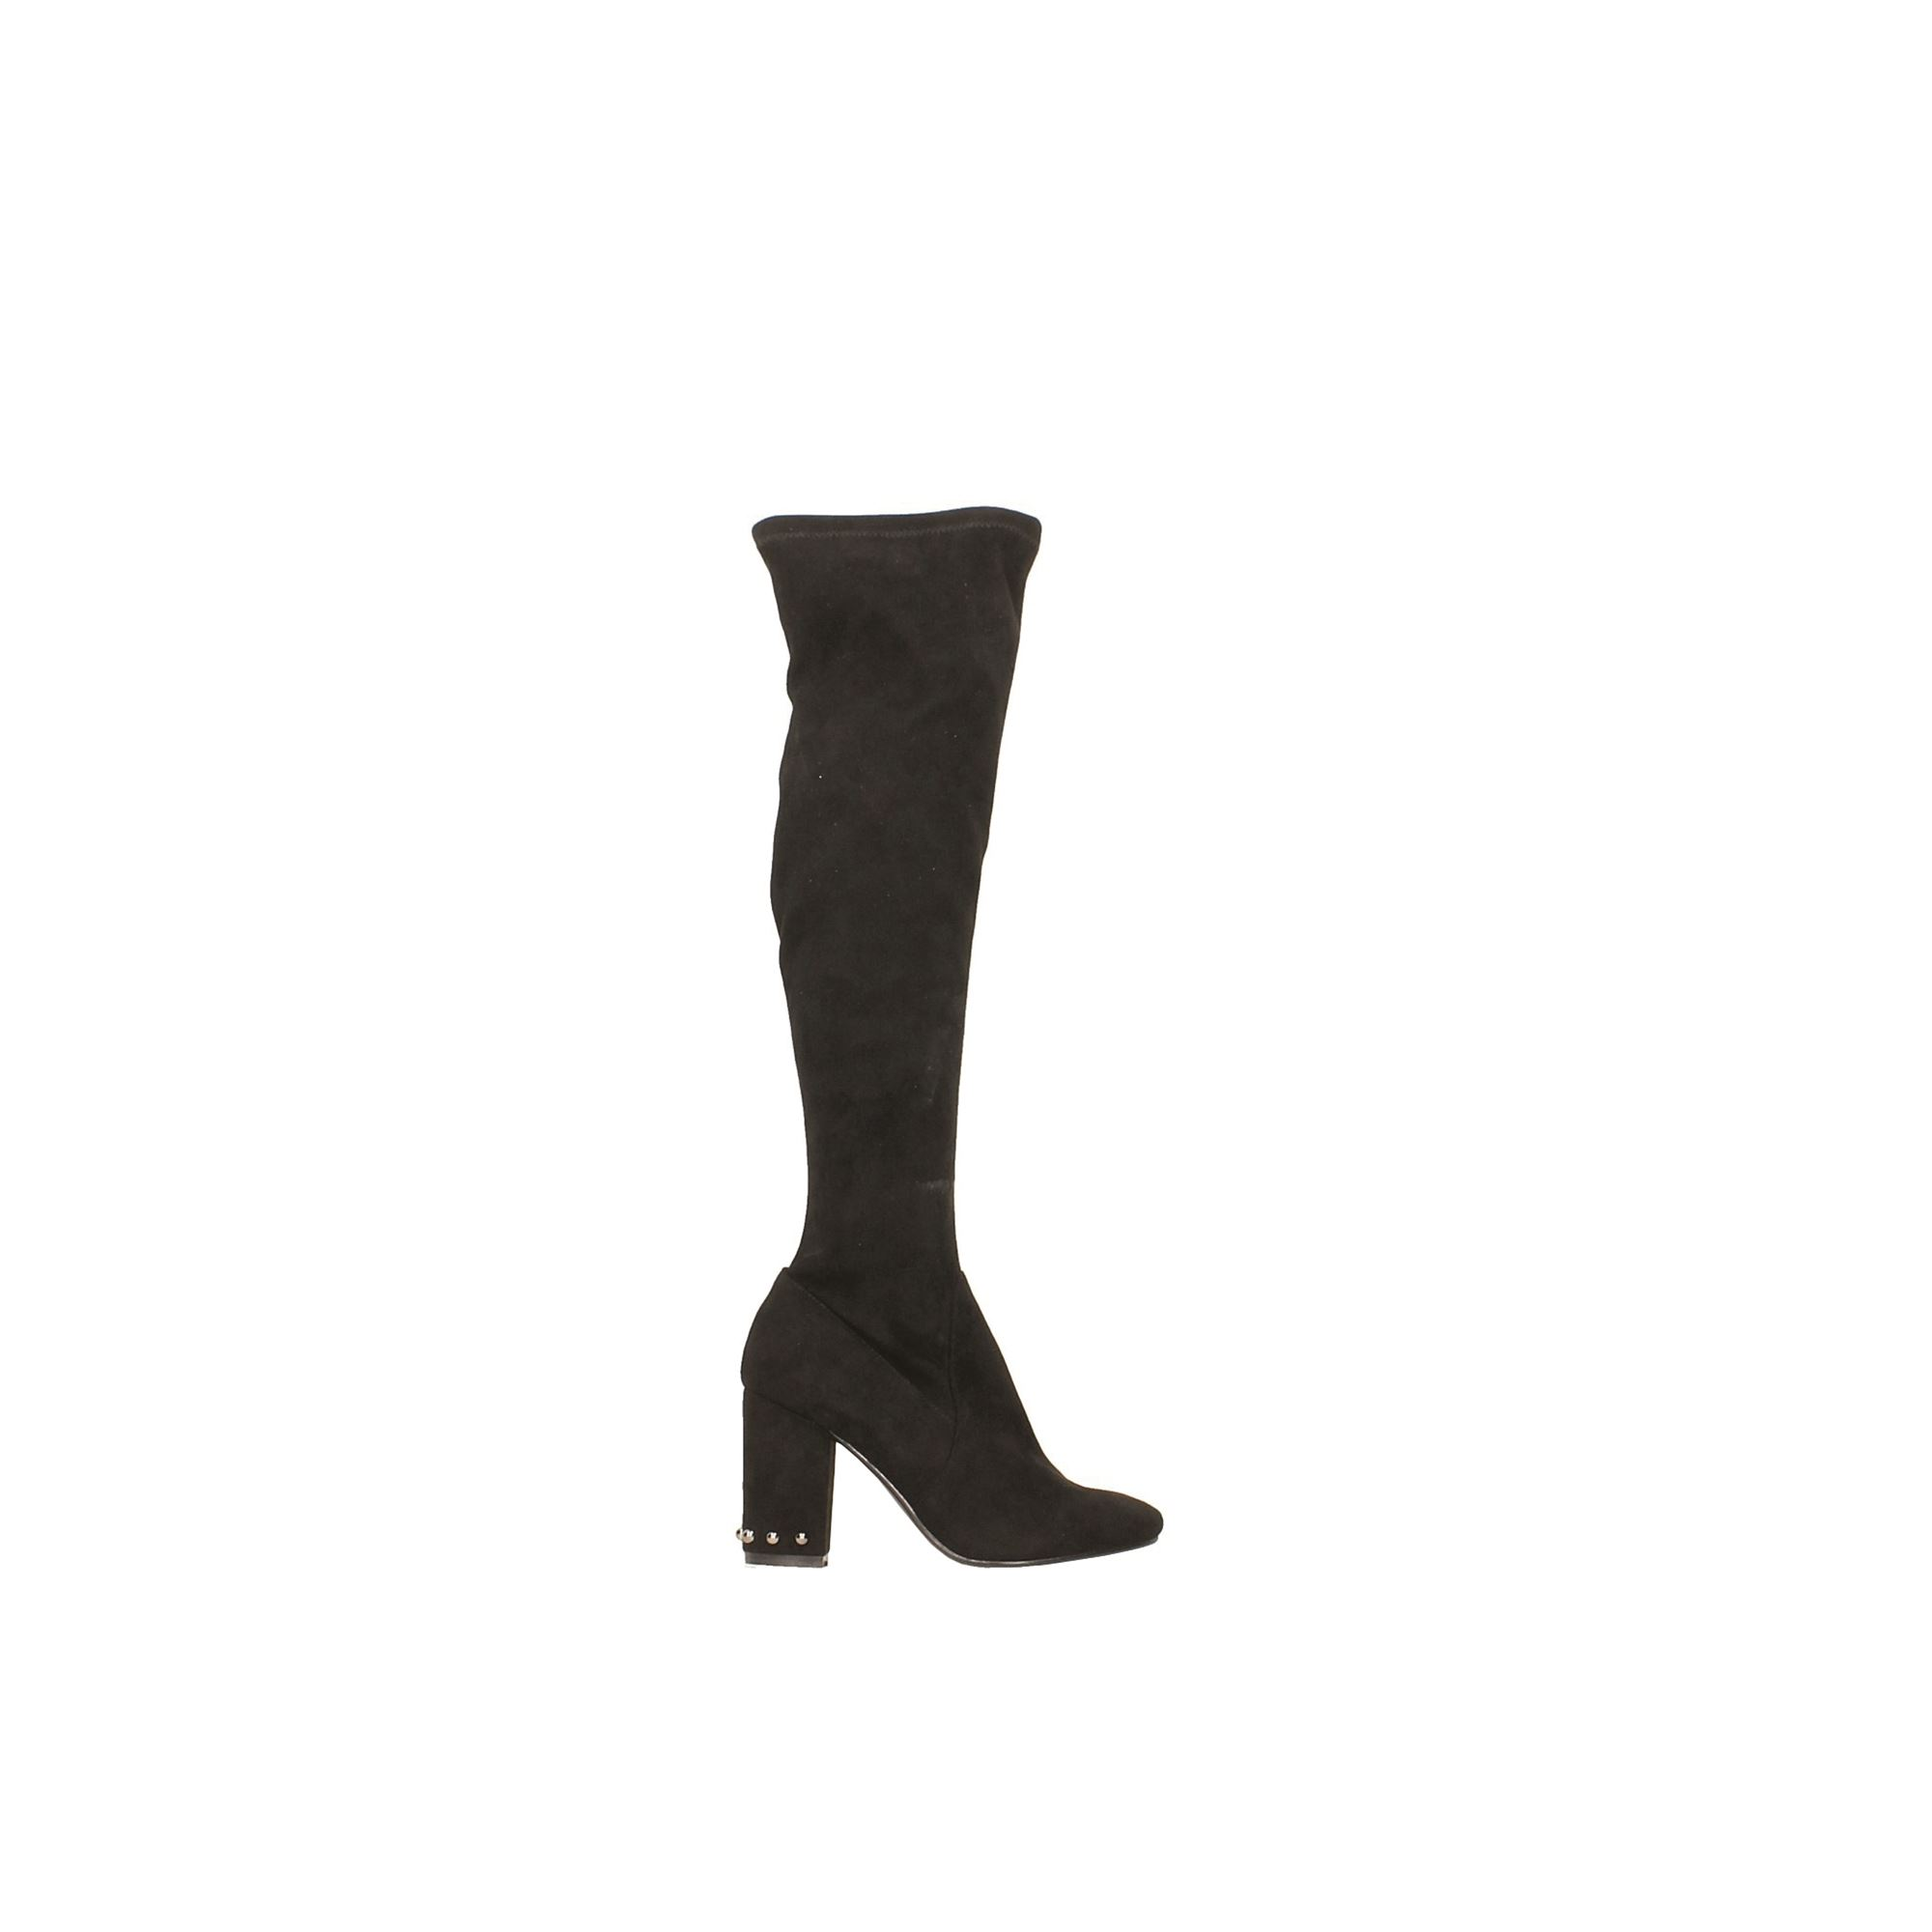 Tata Italia Shoes Woman Stivali Black 827-4